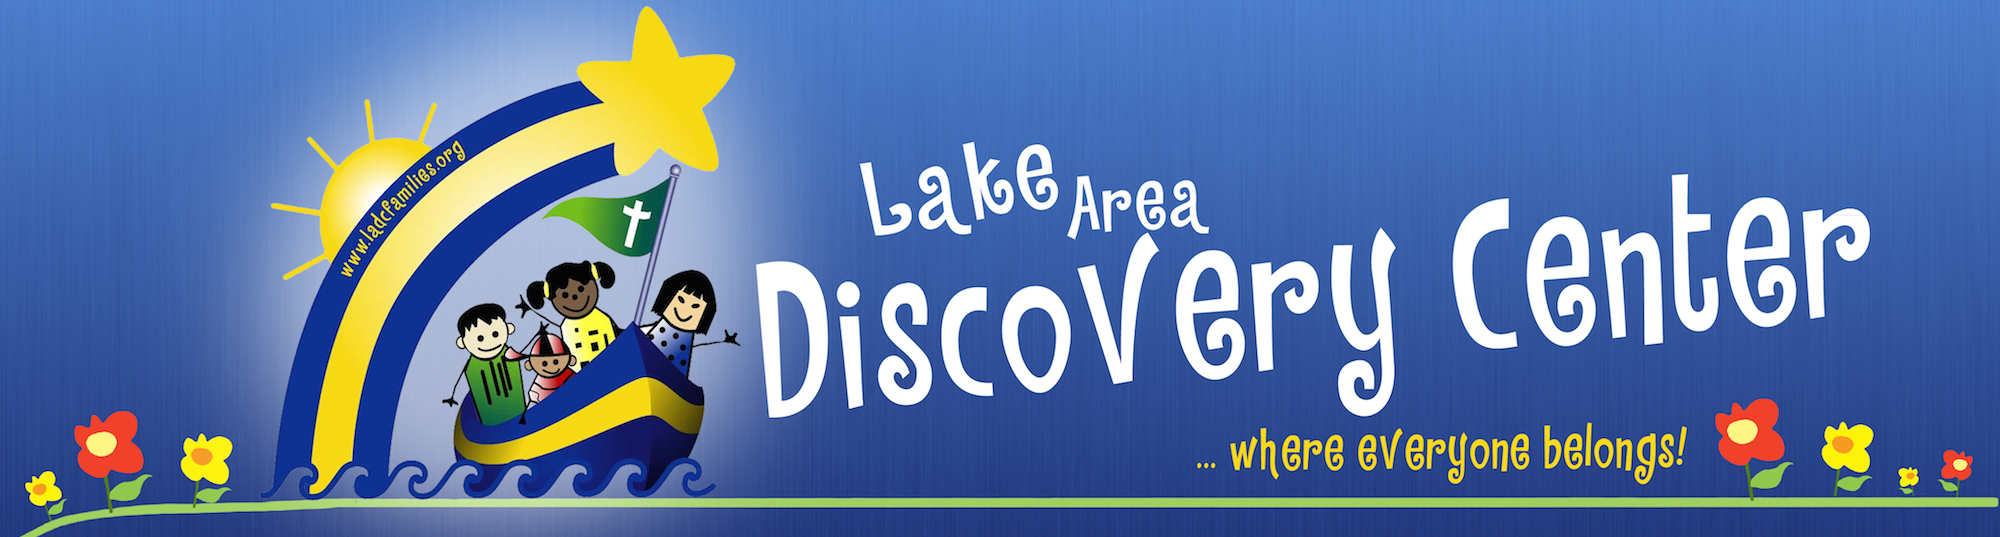 Lake Area Discovery Center at Annunciation School